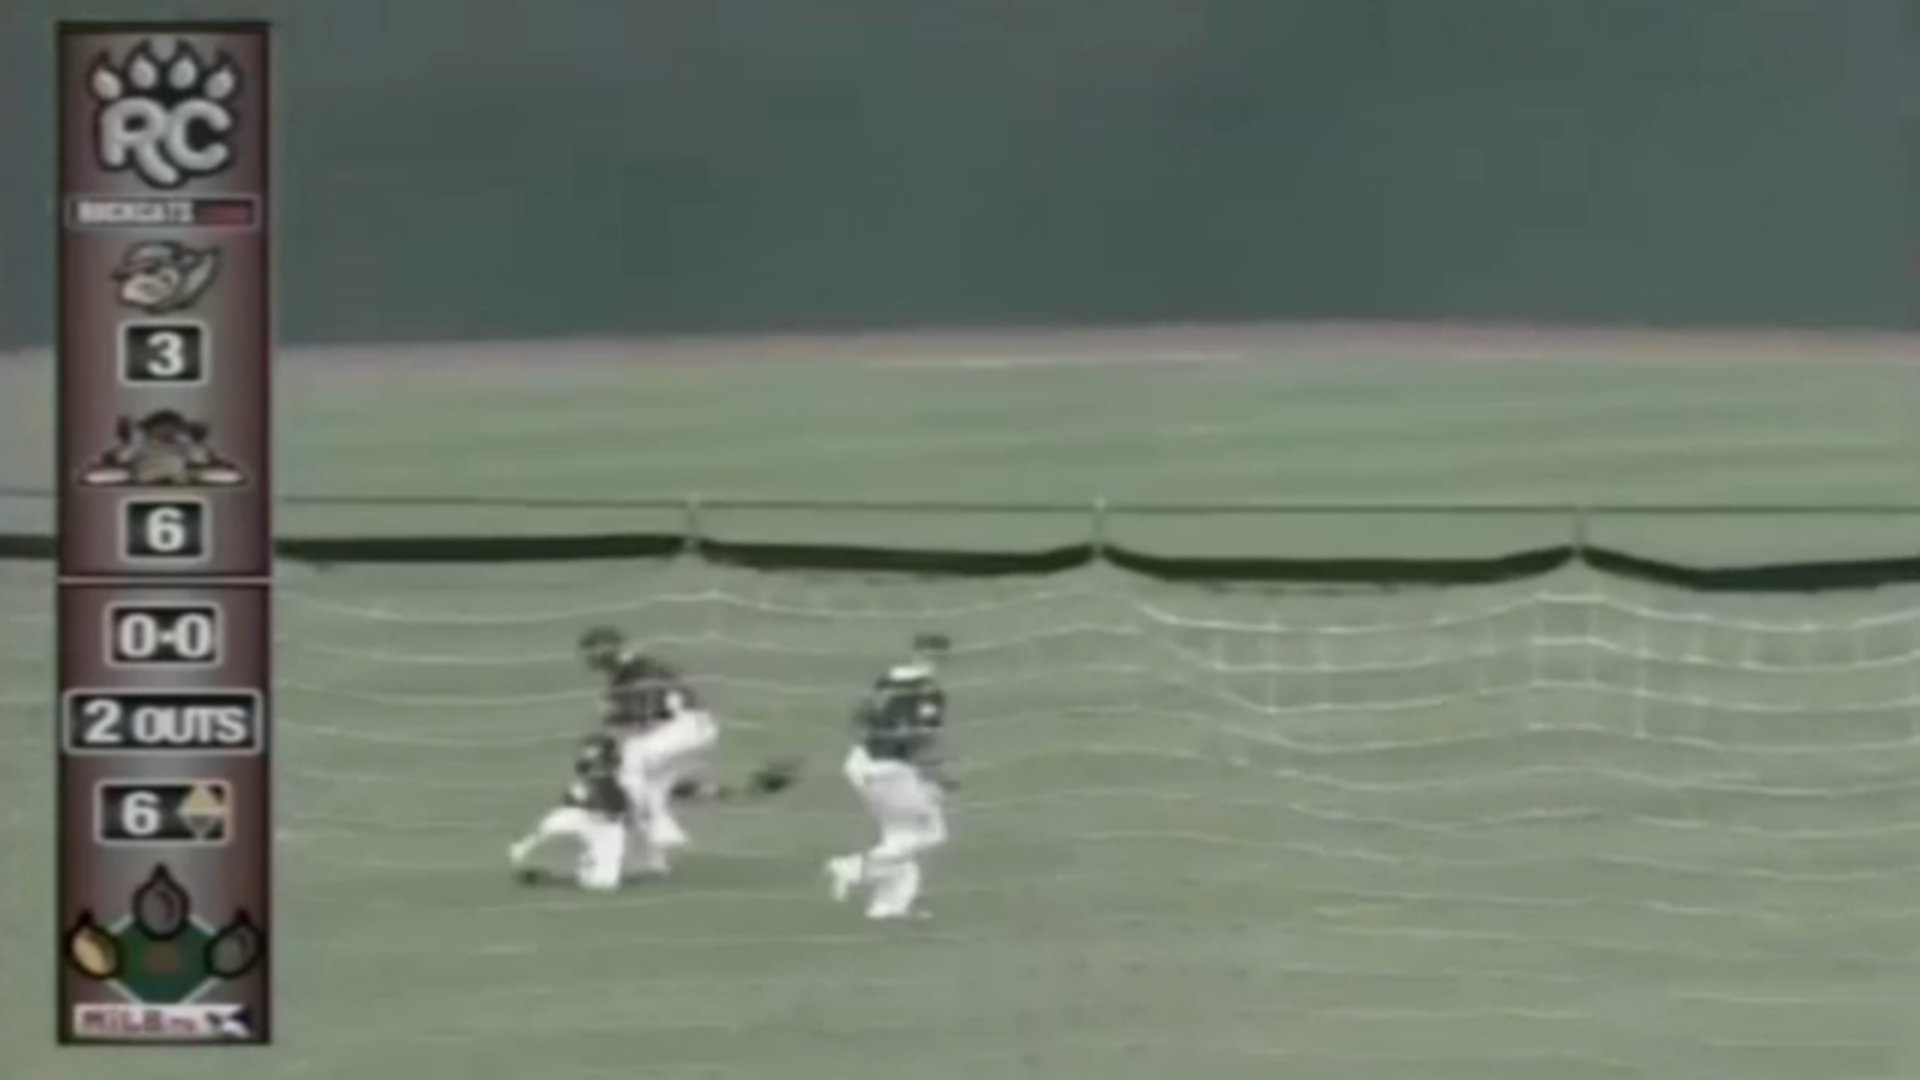 Rockies prospect David Dahl lacerates spleen in outfield collision